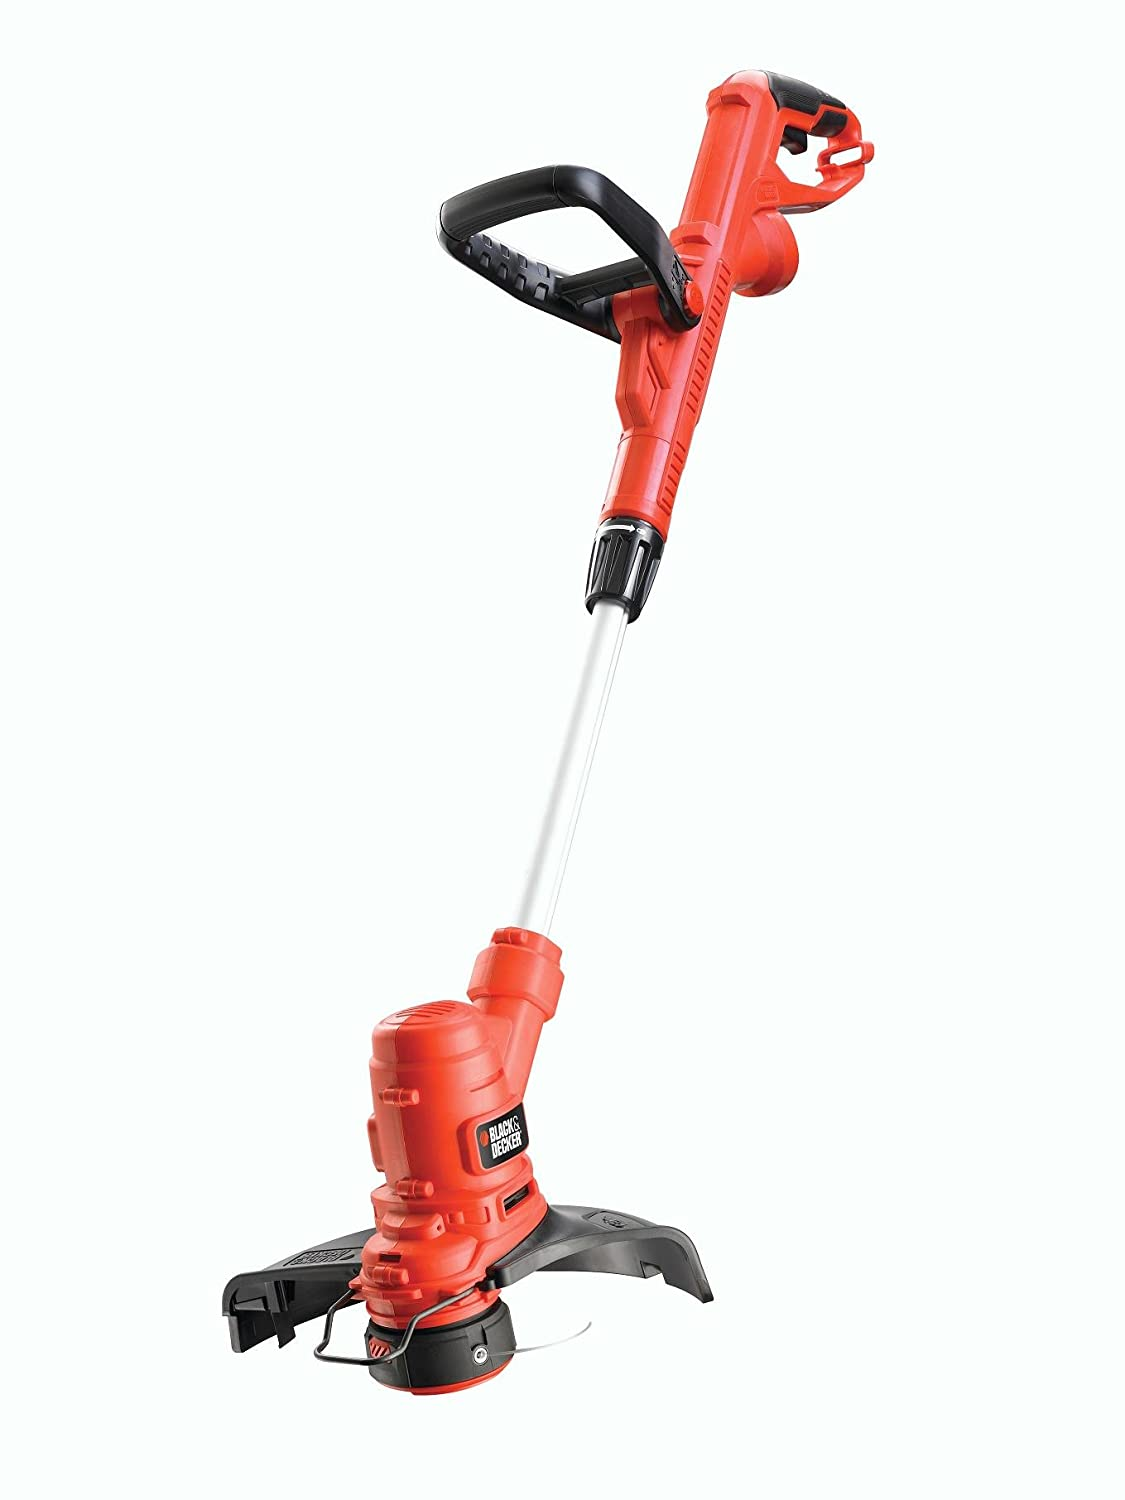 BLACK+DECKER Grass Strimmer, 25 cm 450 W Black & Decker ST4525-GB